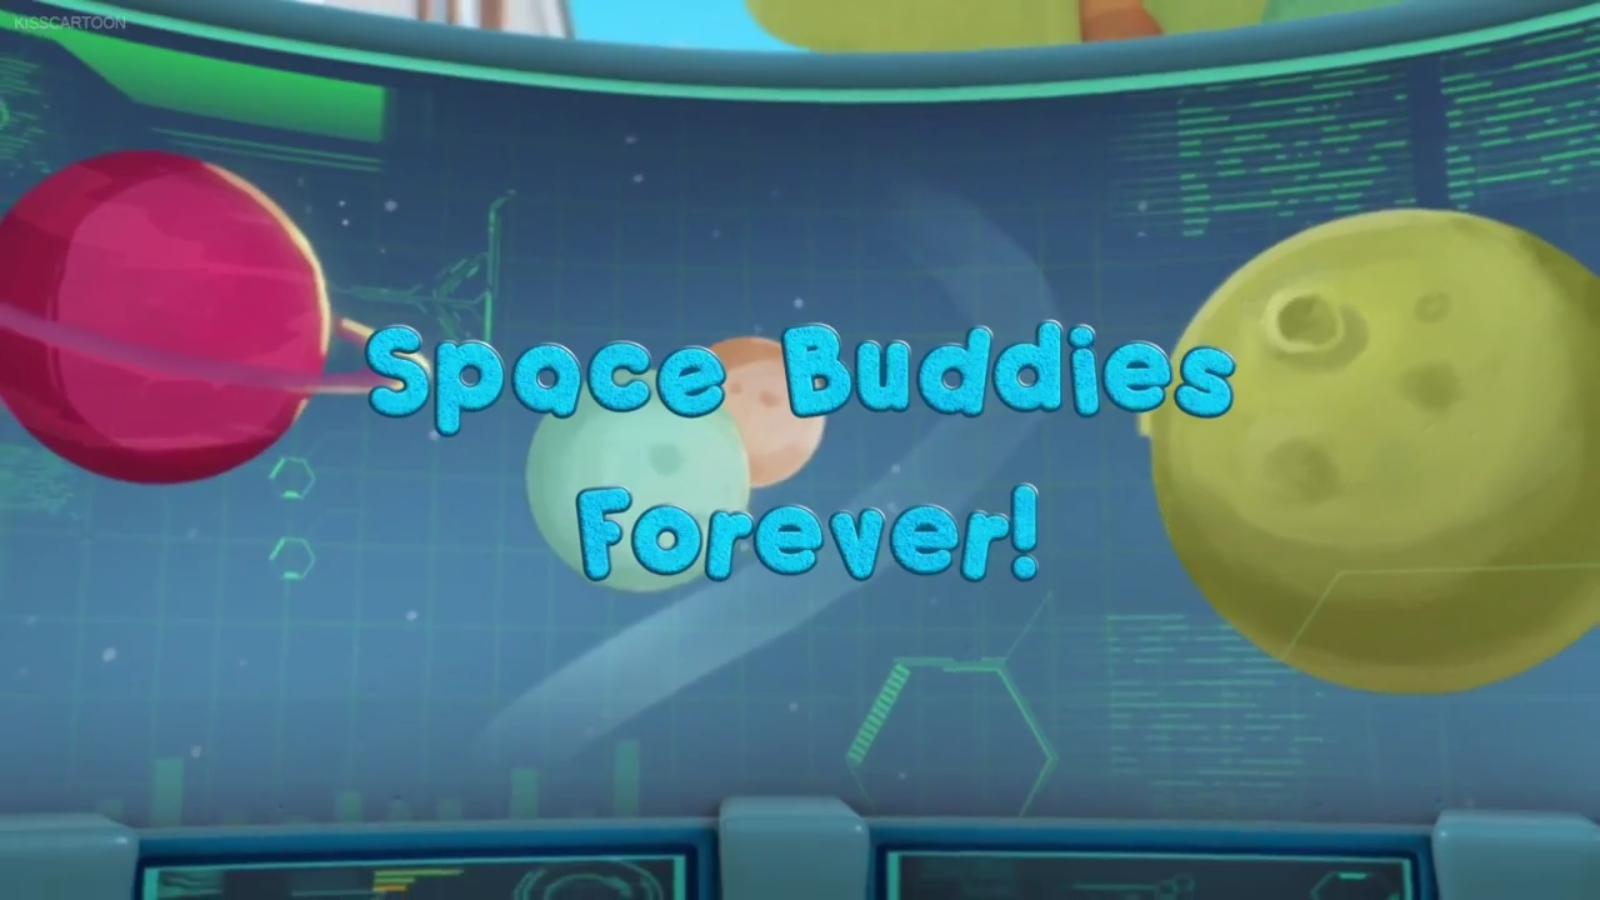 Space Buddies Forever Doc Mcstuffins Wiki Fandom Powered By Wikia